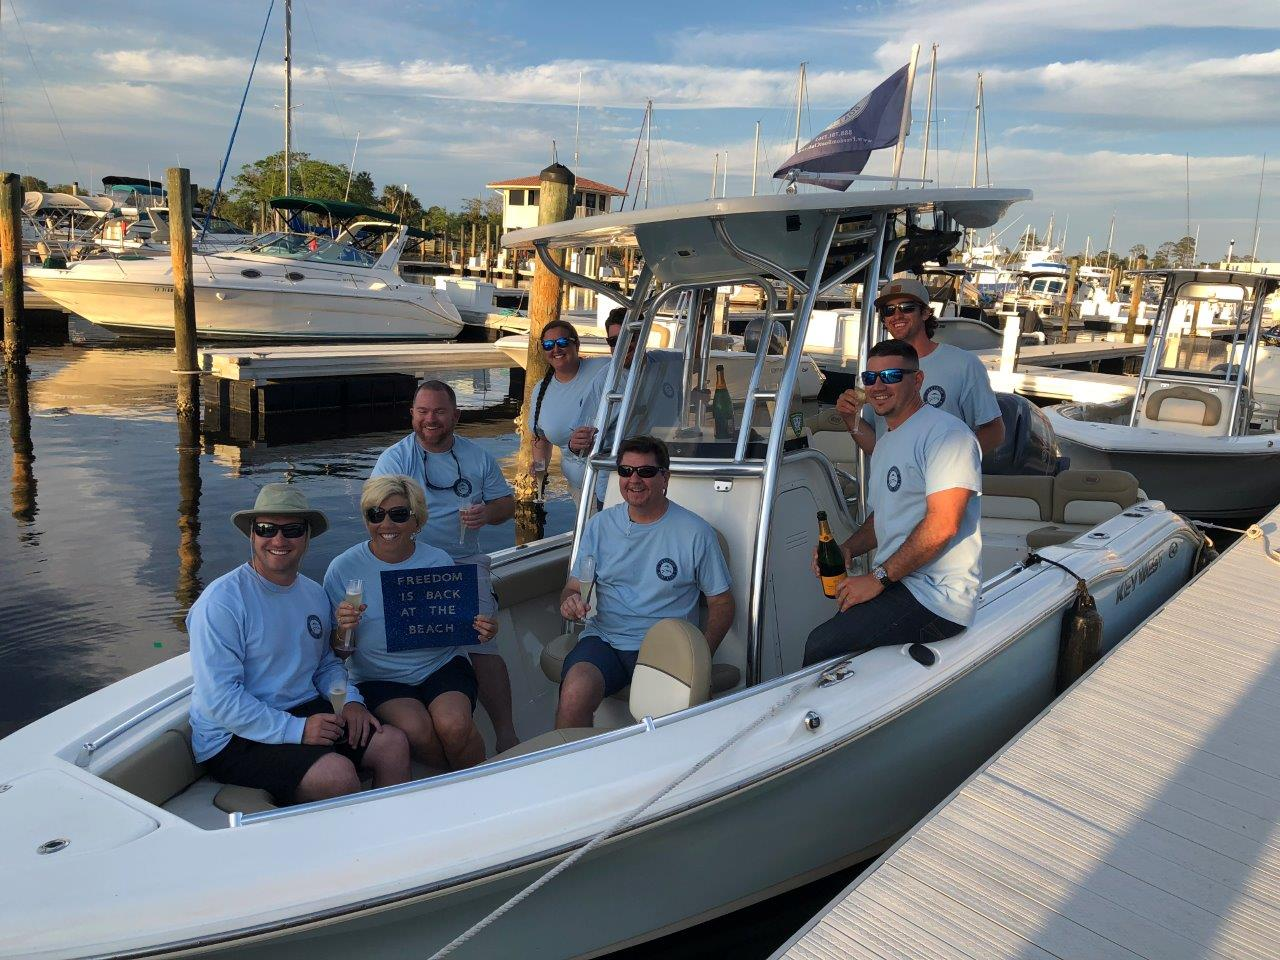 Freedom Boat Club is coming to Jacksonville Beach